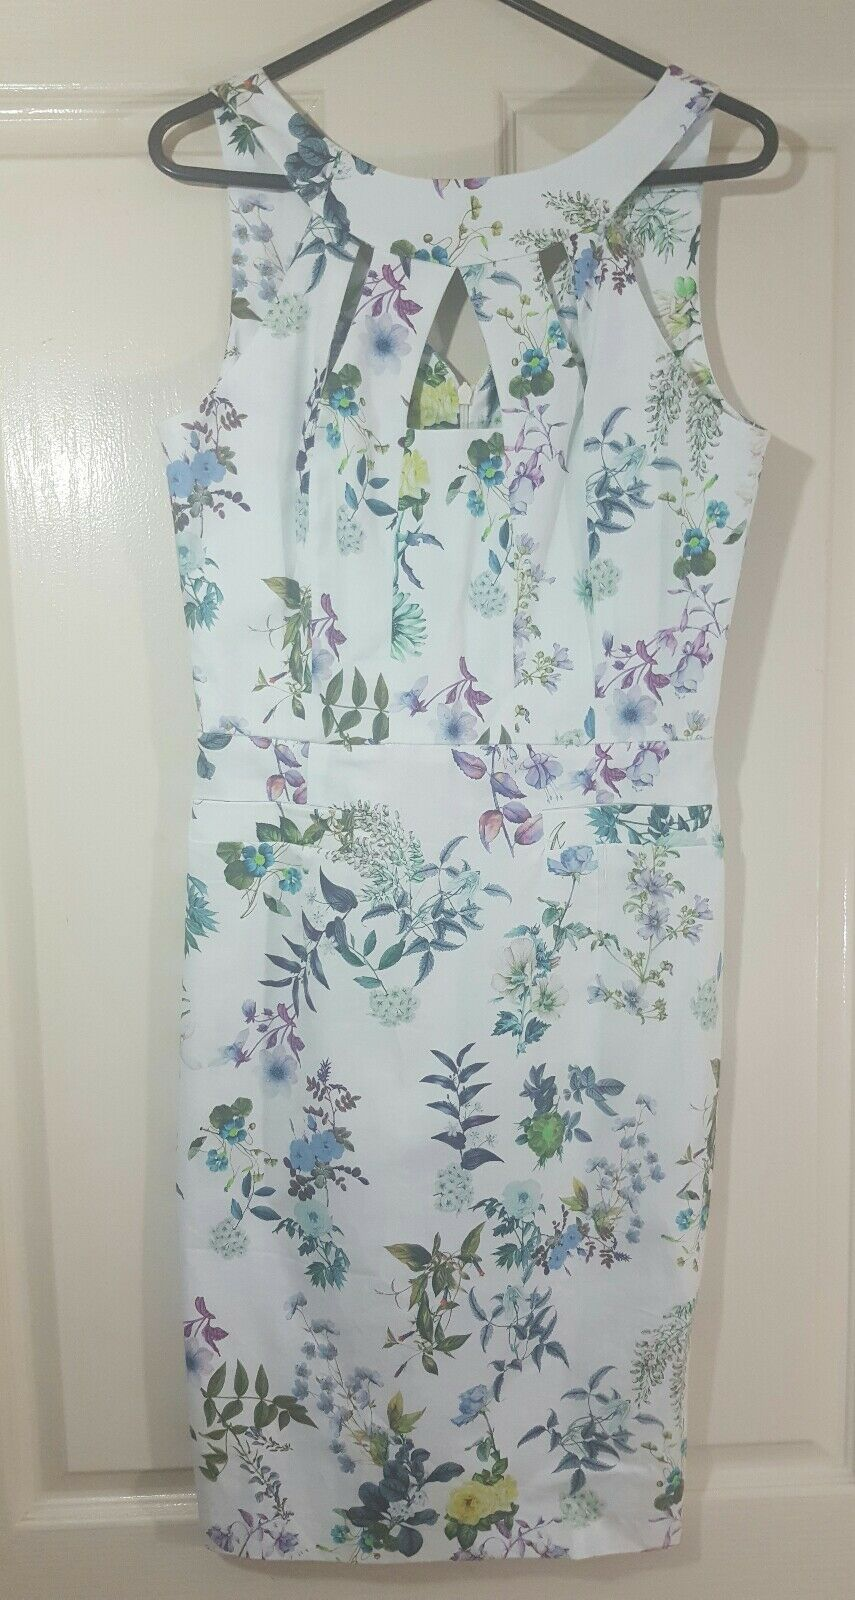 NEW Womens Designer Biancoghiaccio Floral Dress Size 40 Made In